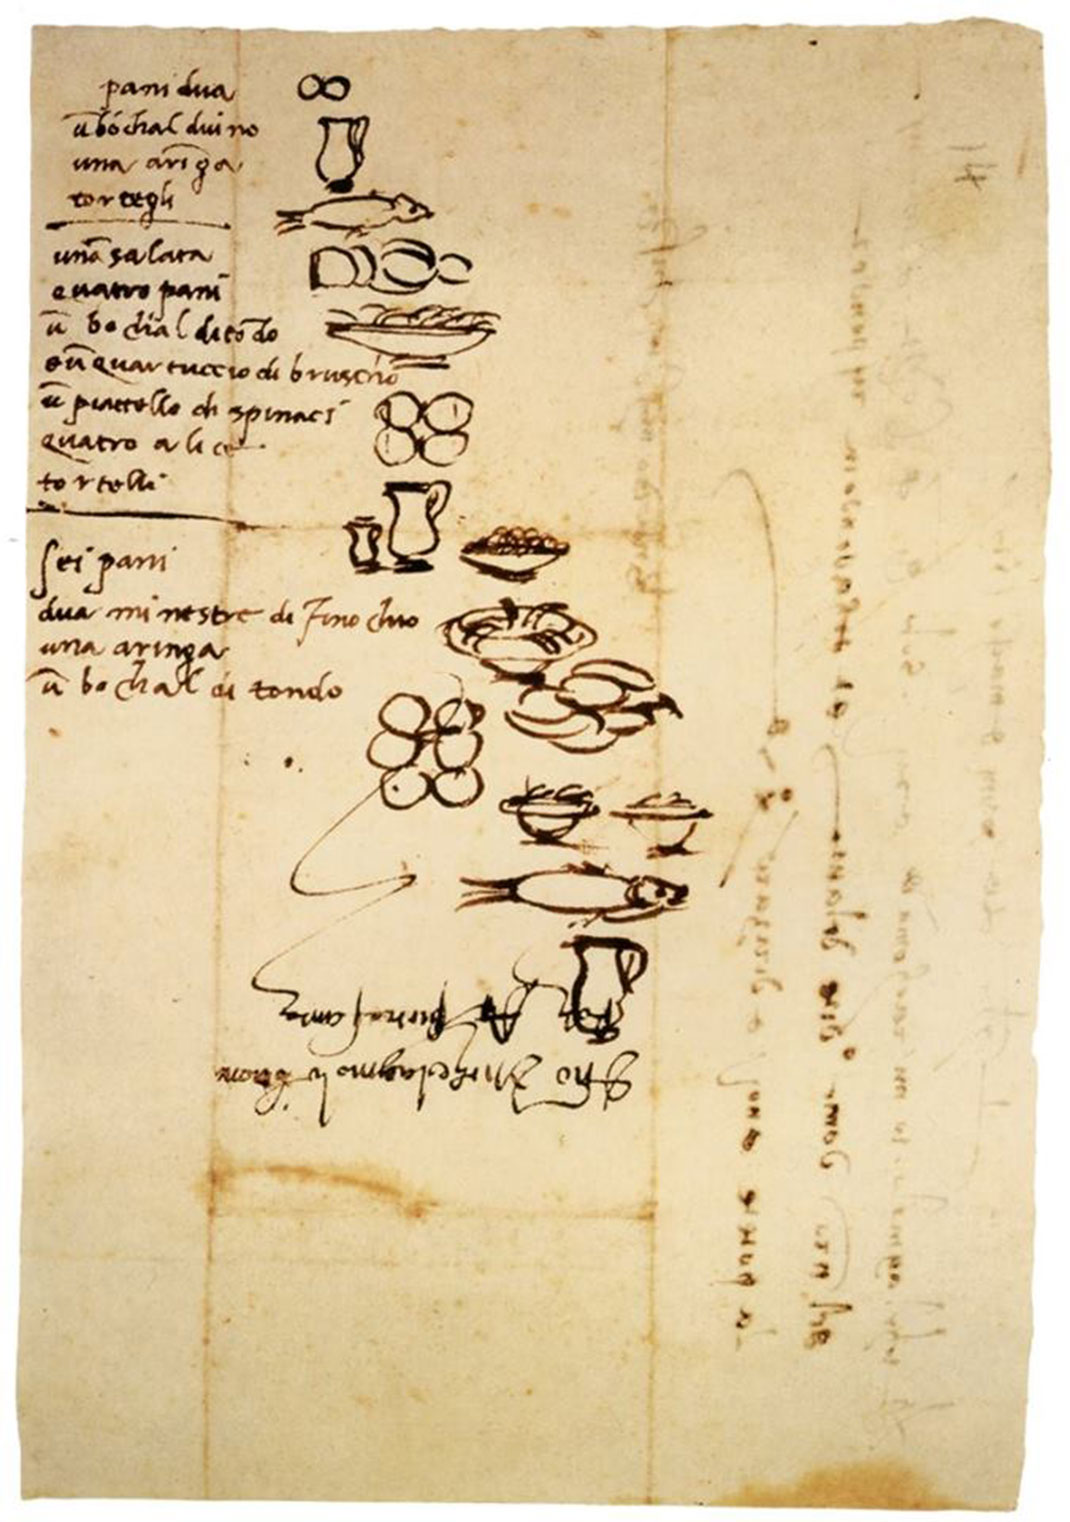 This is an illustrated grocery list that Michelangelo would create for his illiterate servants.